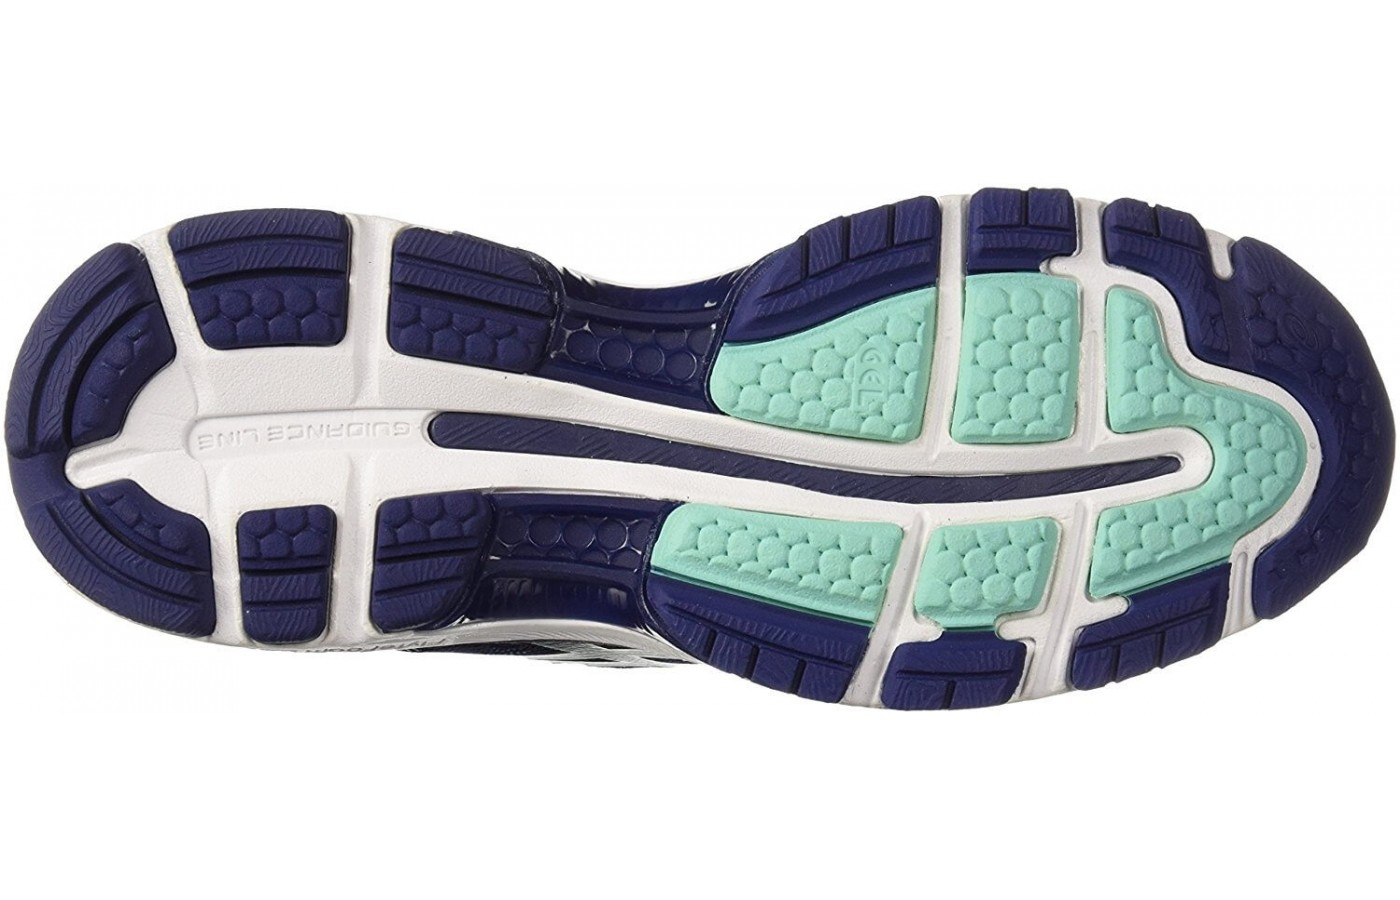 For added flexibility and to improve the gait cycle, runners will find a vertical flex groove down the center of the outsole.